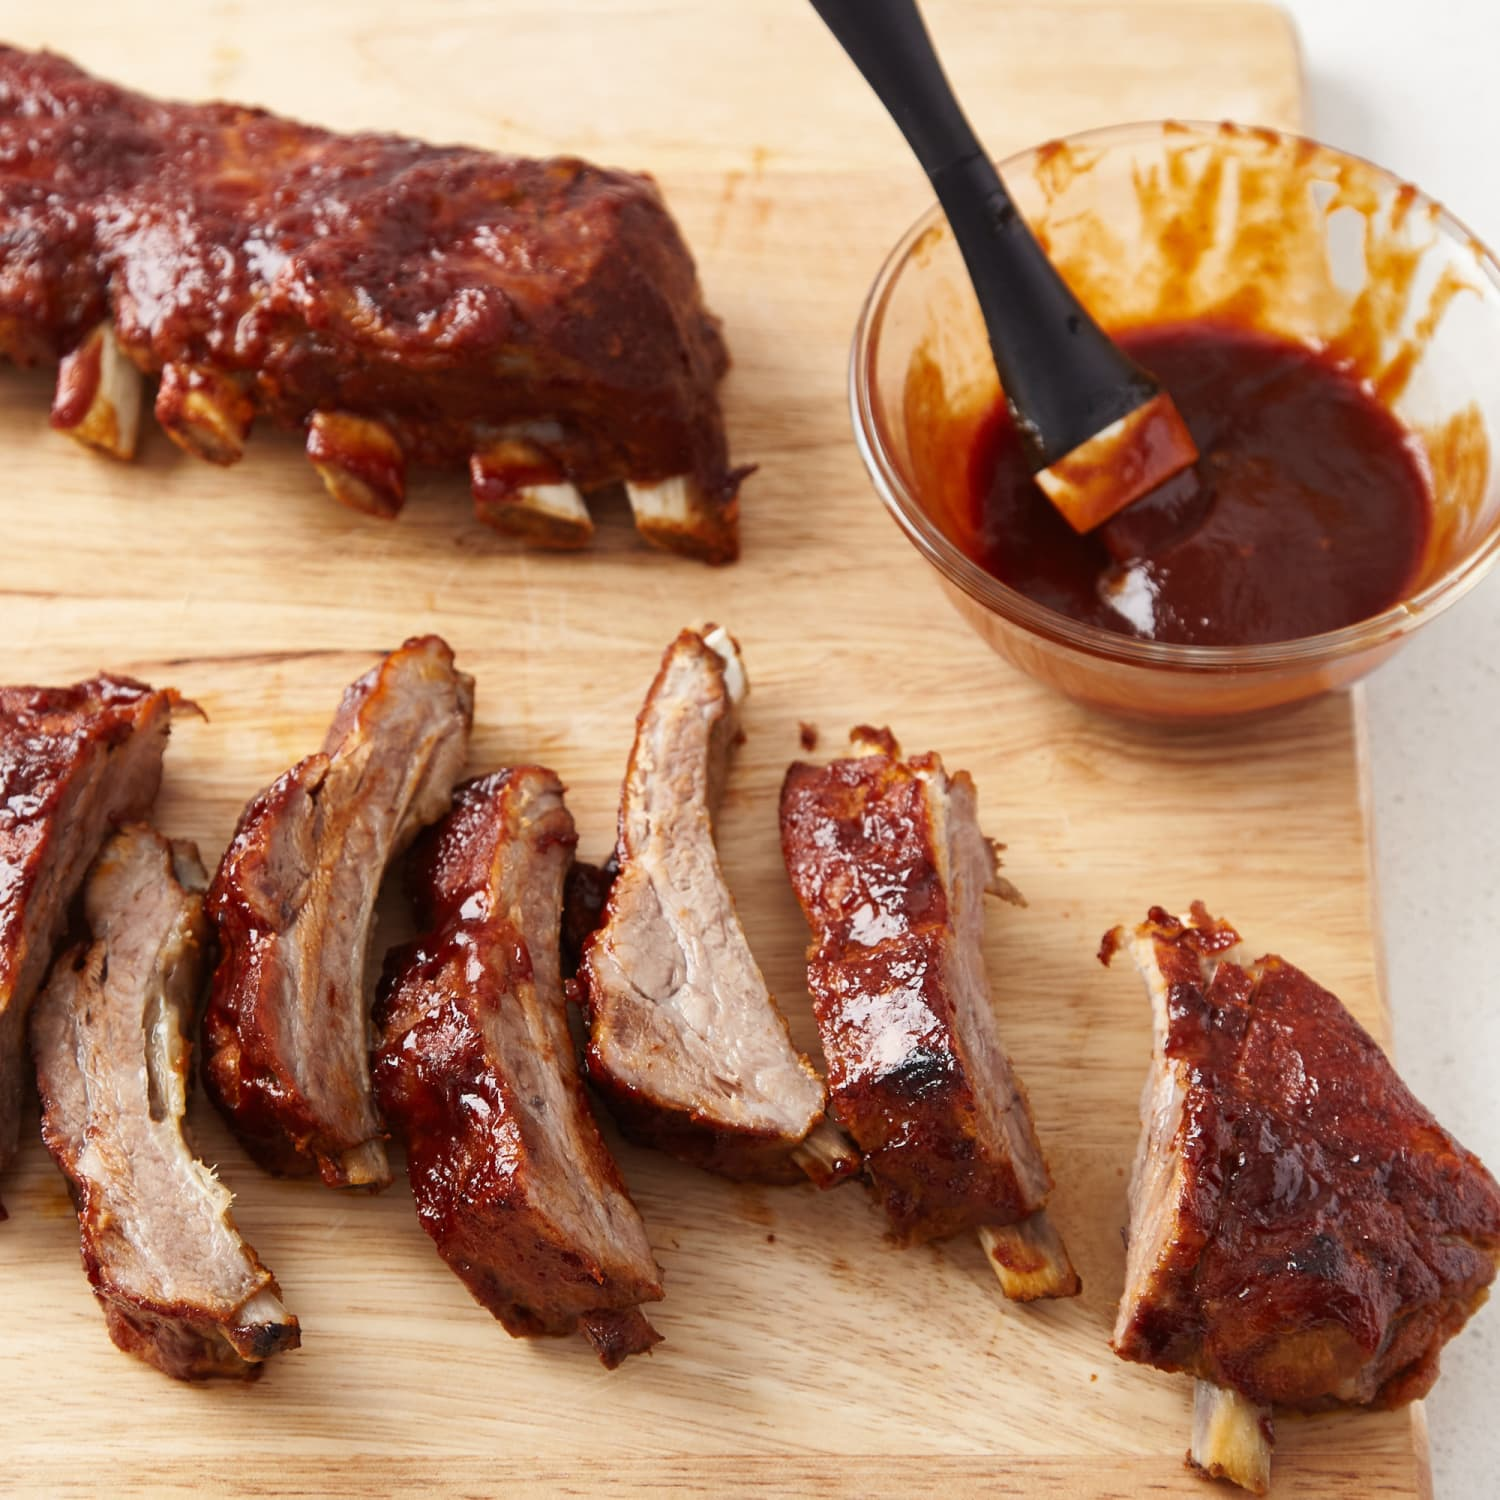 How To Make Ribs in the Instant Pot